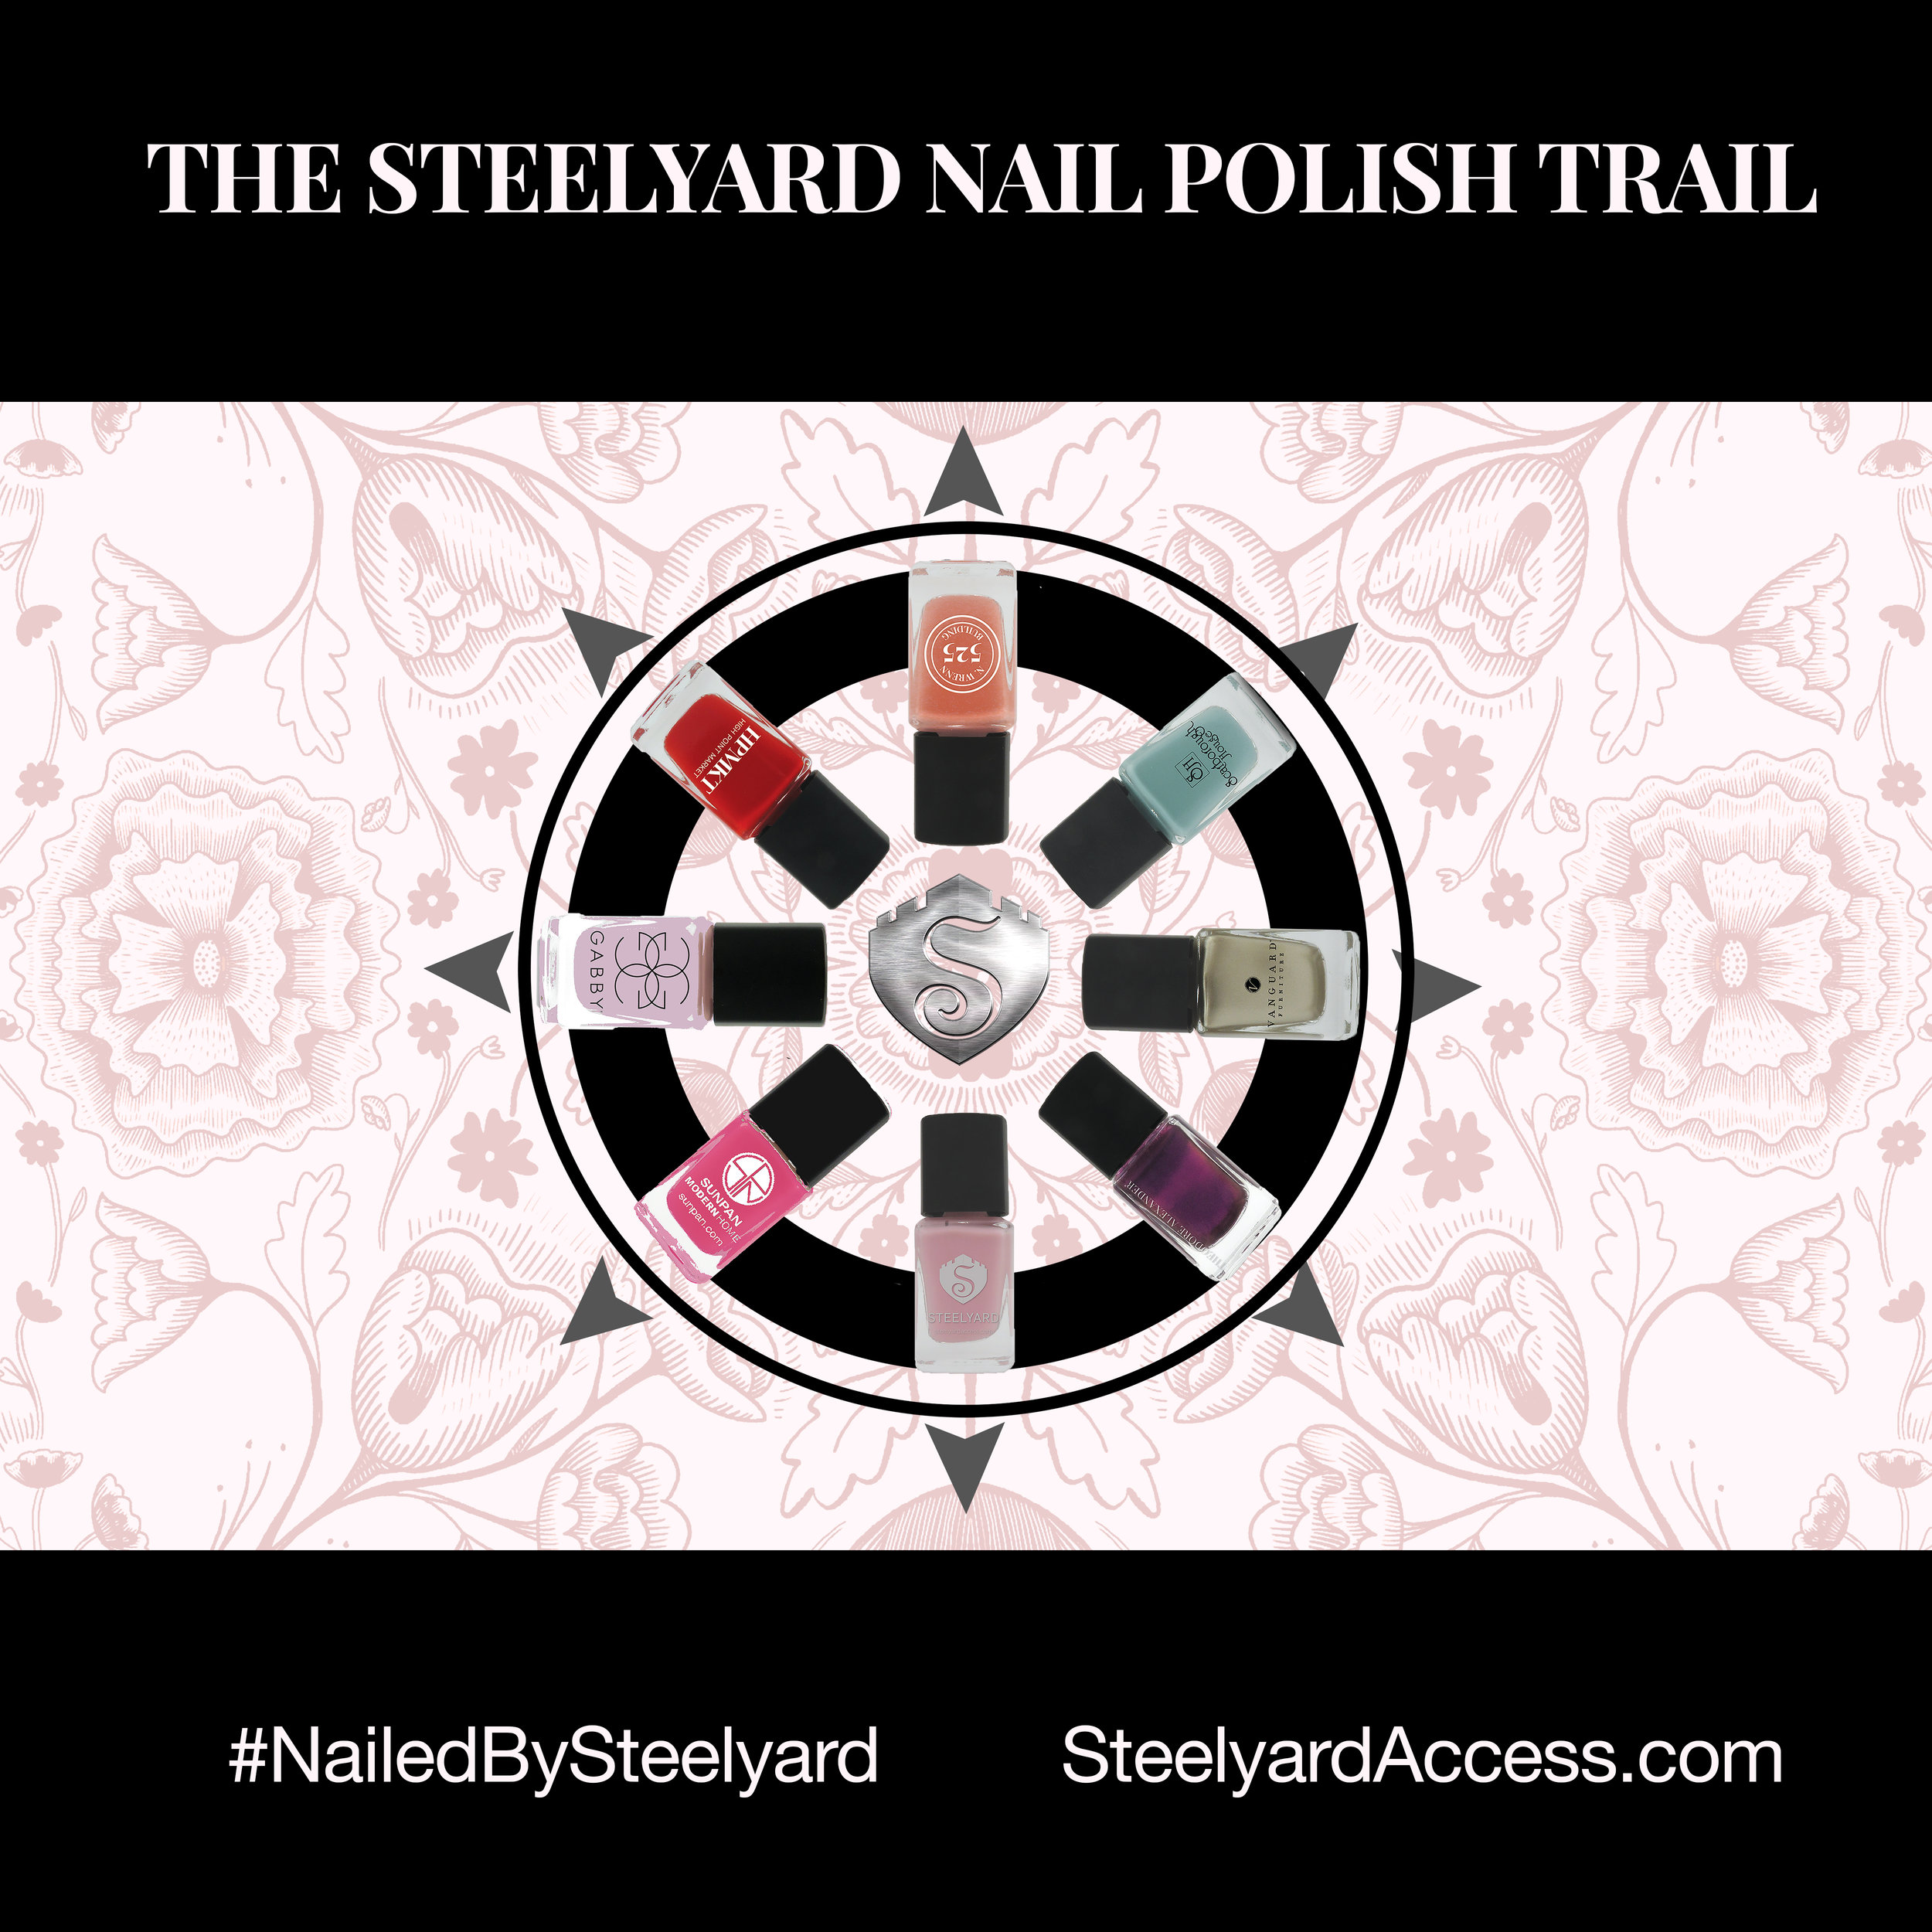 Hi-Res-Steelyard-Nail-Polish-Trail-Graphic.jpg